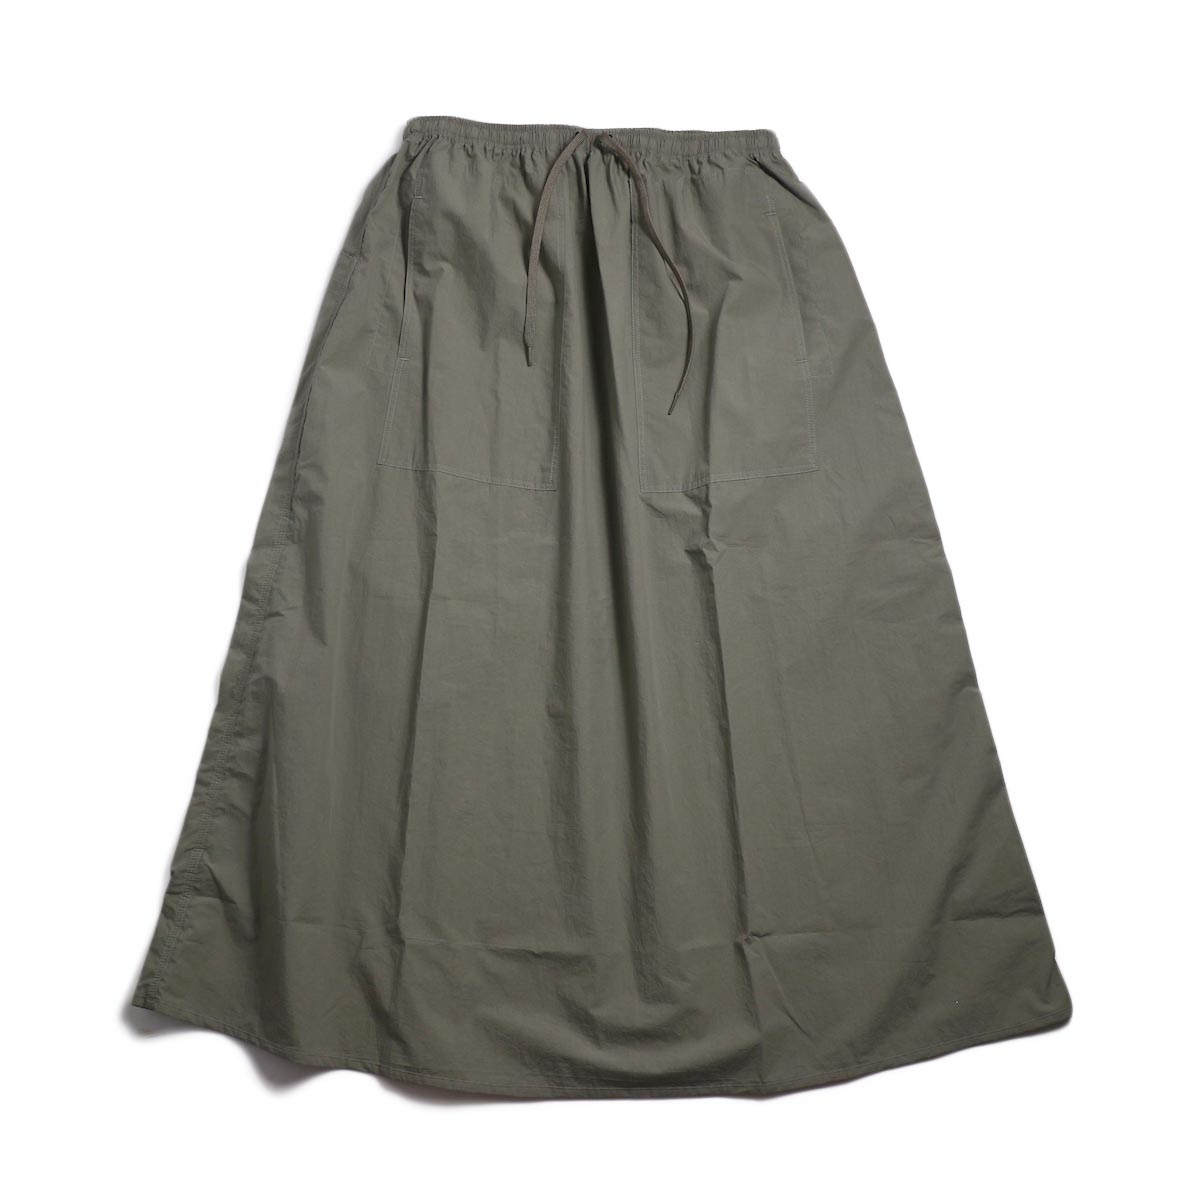 orSlow / Climbing Skirt -Greige 正面